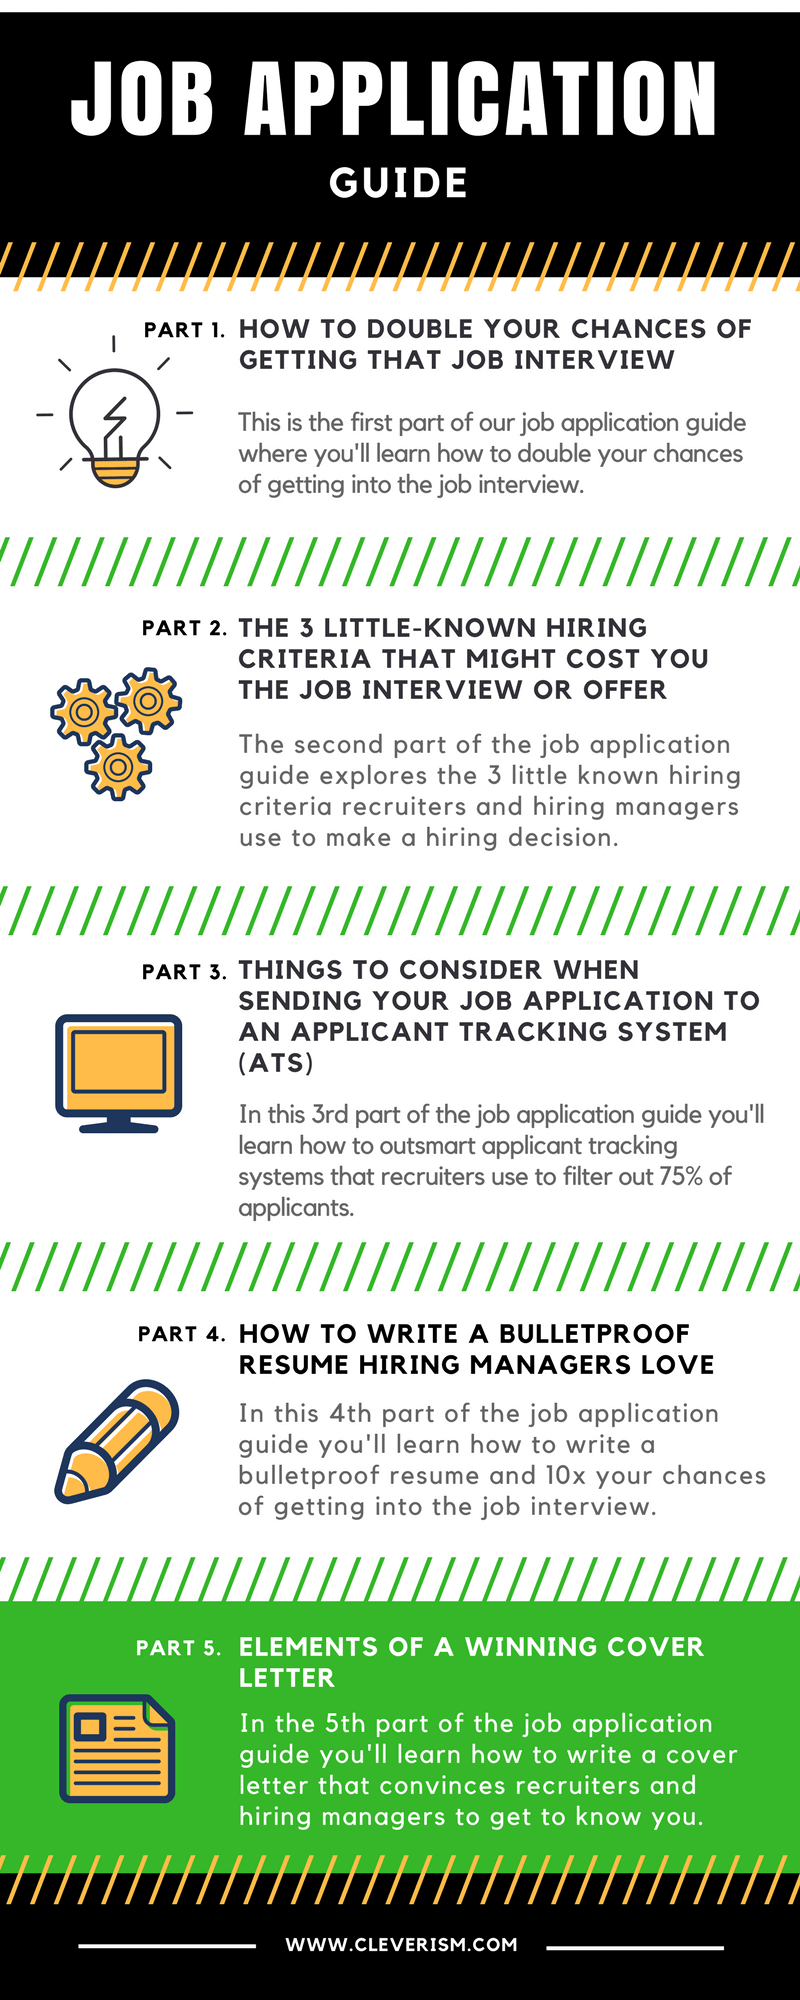 Job-Application-Guide_part-5-1-1-1 Job Applicant Letter Template on